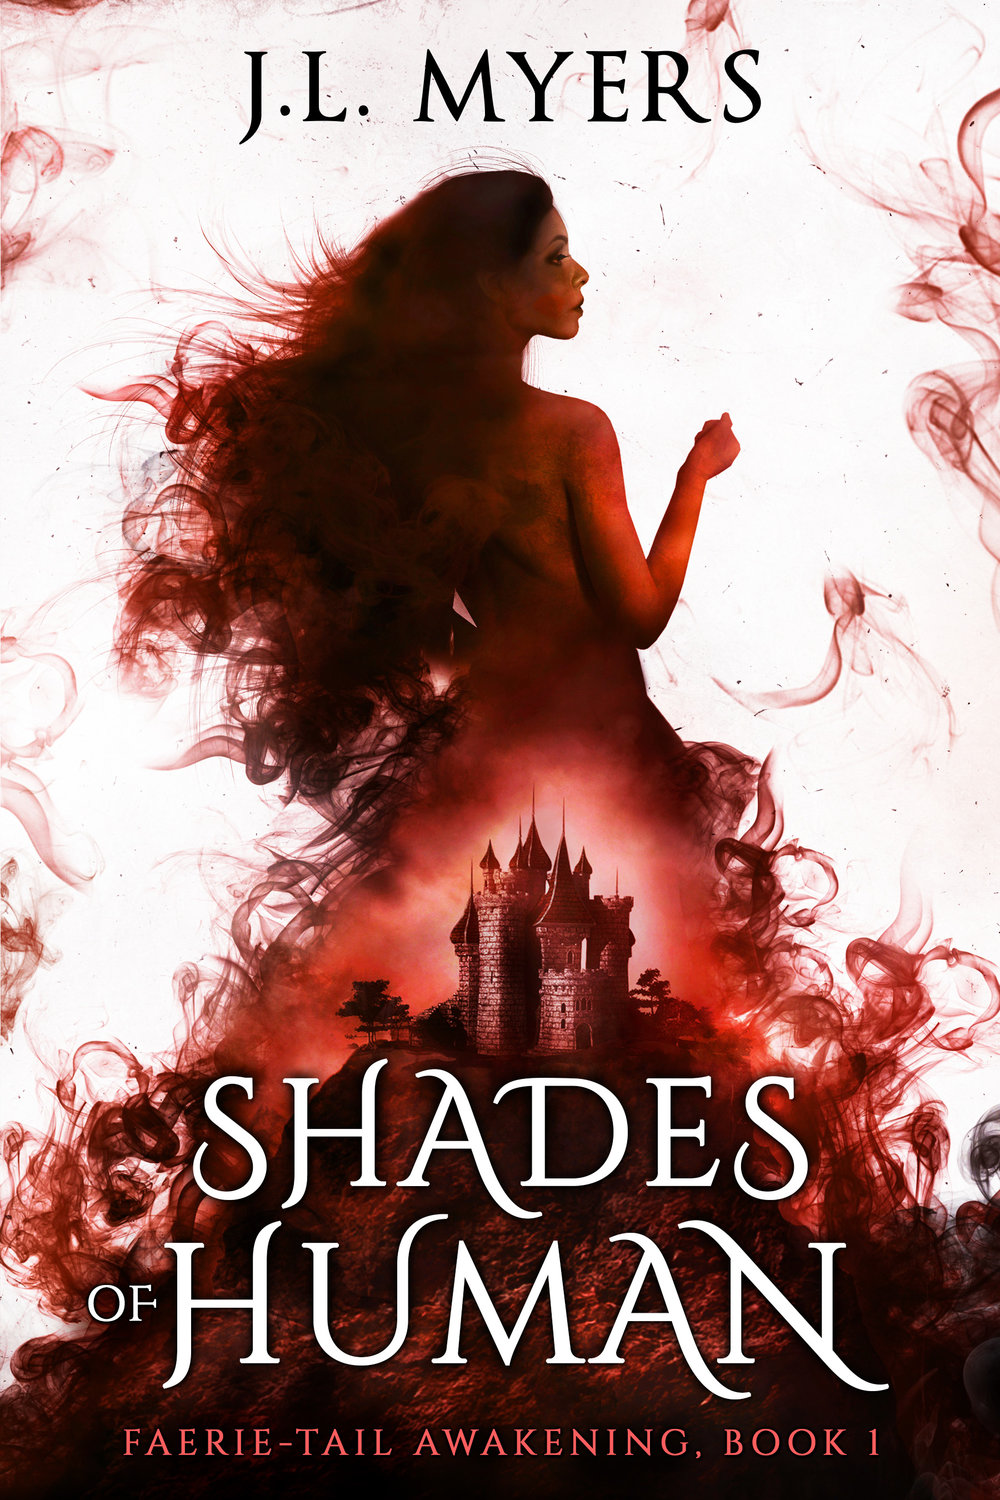 SHADES OF HUMAN   J.L. Myers    A girl who sees monsters.  A stalker who saves lives.  Is this a dream come true, or are Calli's nightmares coming to life?